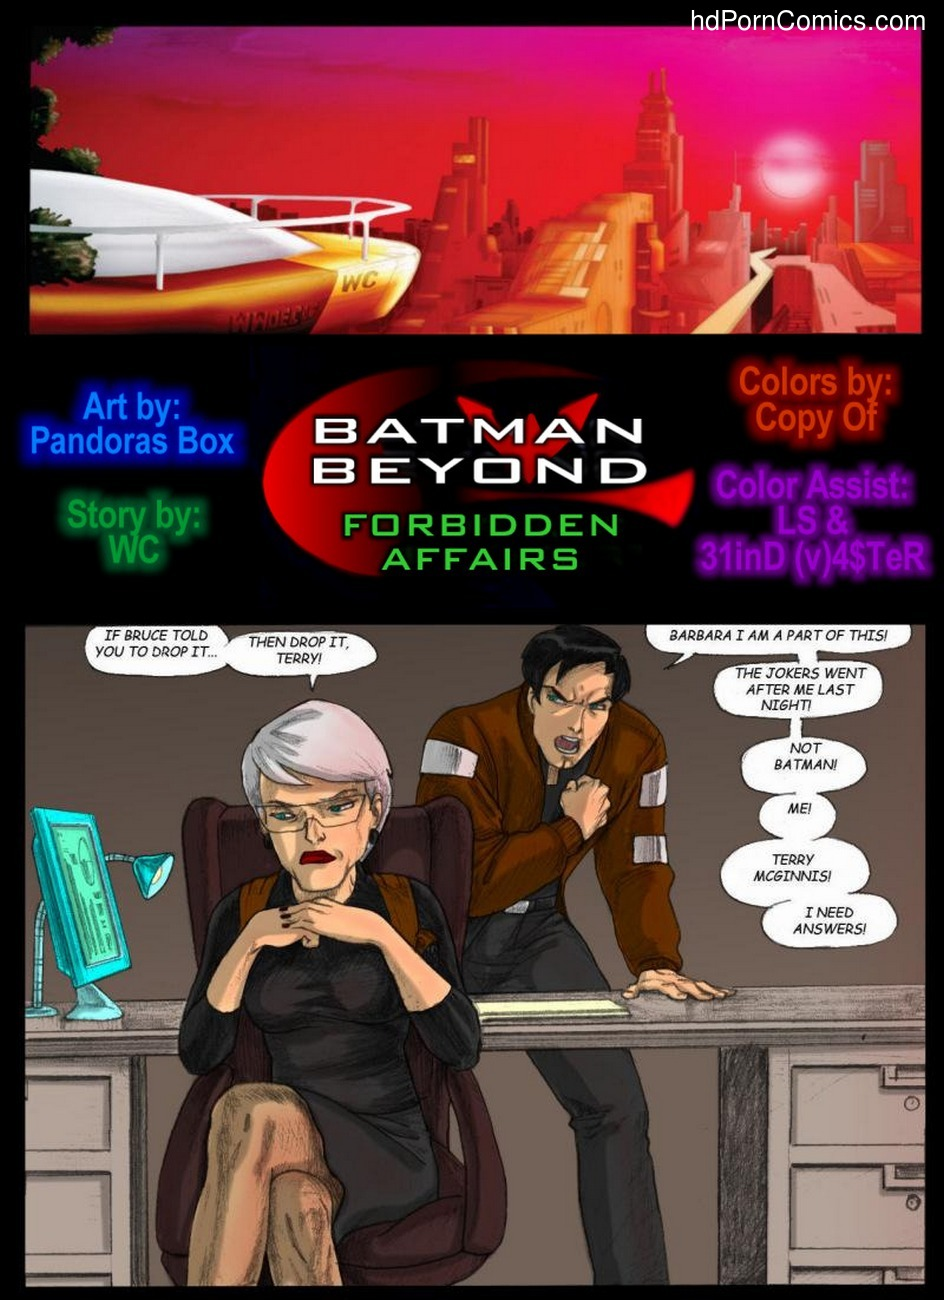 Batman Beyond - Forbidden Affairs 1 3 free sex comic